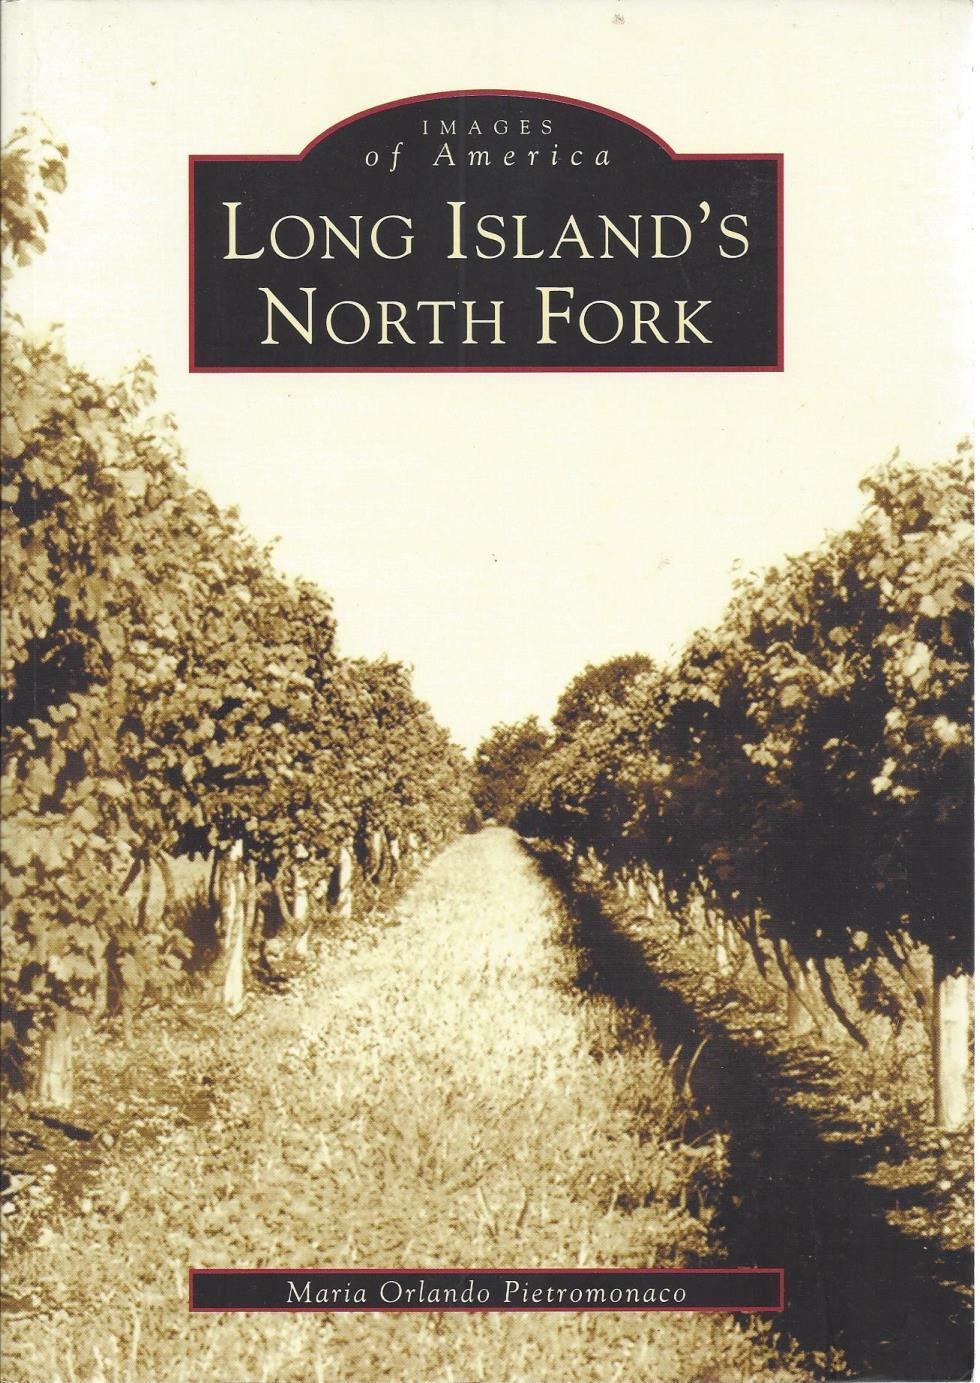 Long Island's North Fork (NY)  (Images of America), Pietromonaco, Maria Orlando